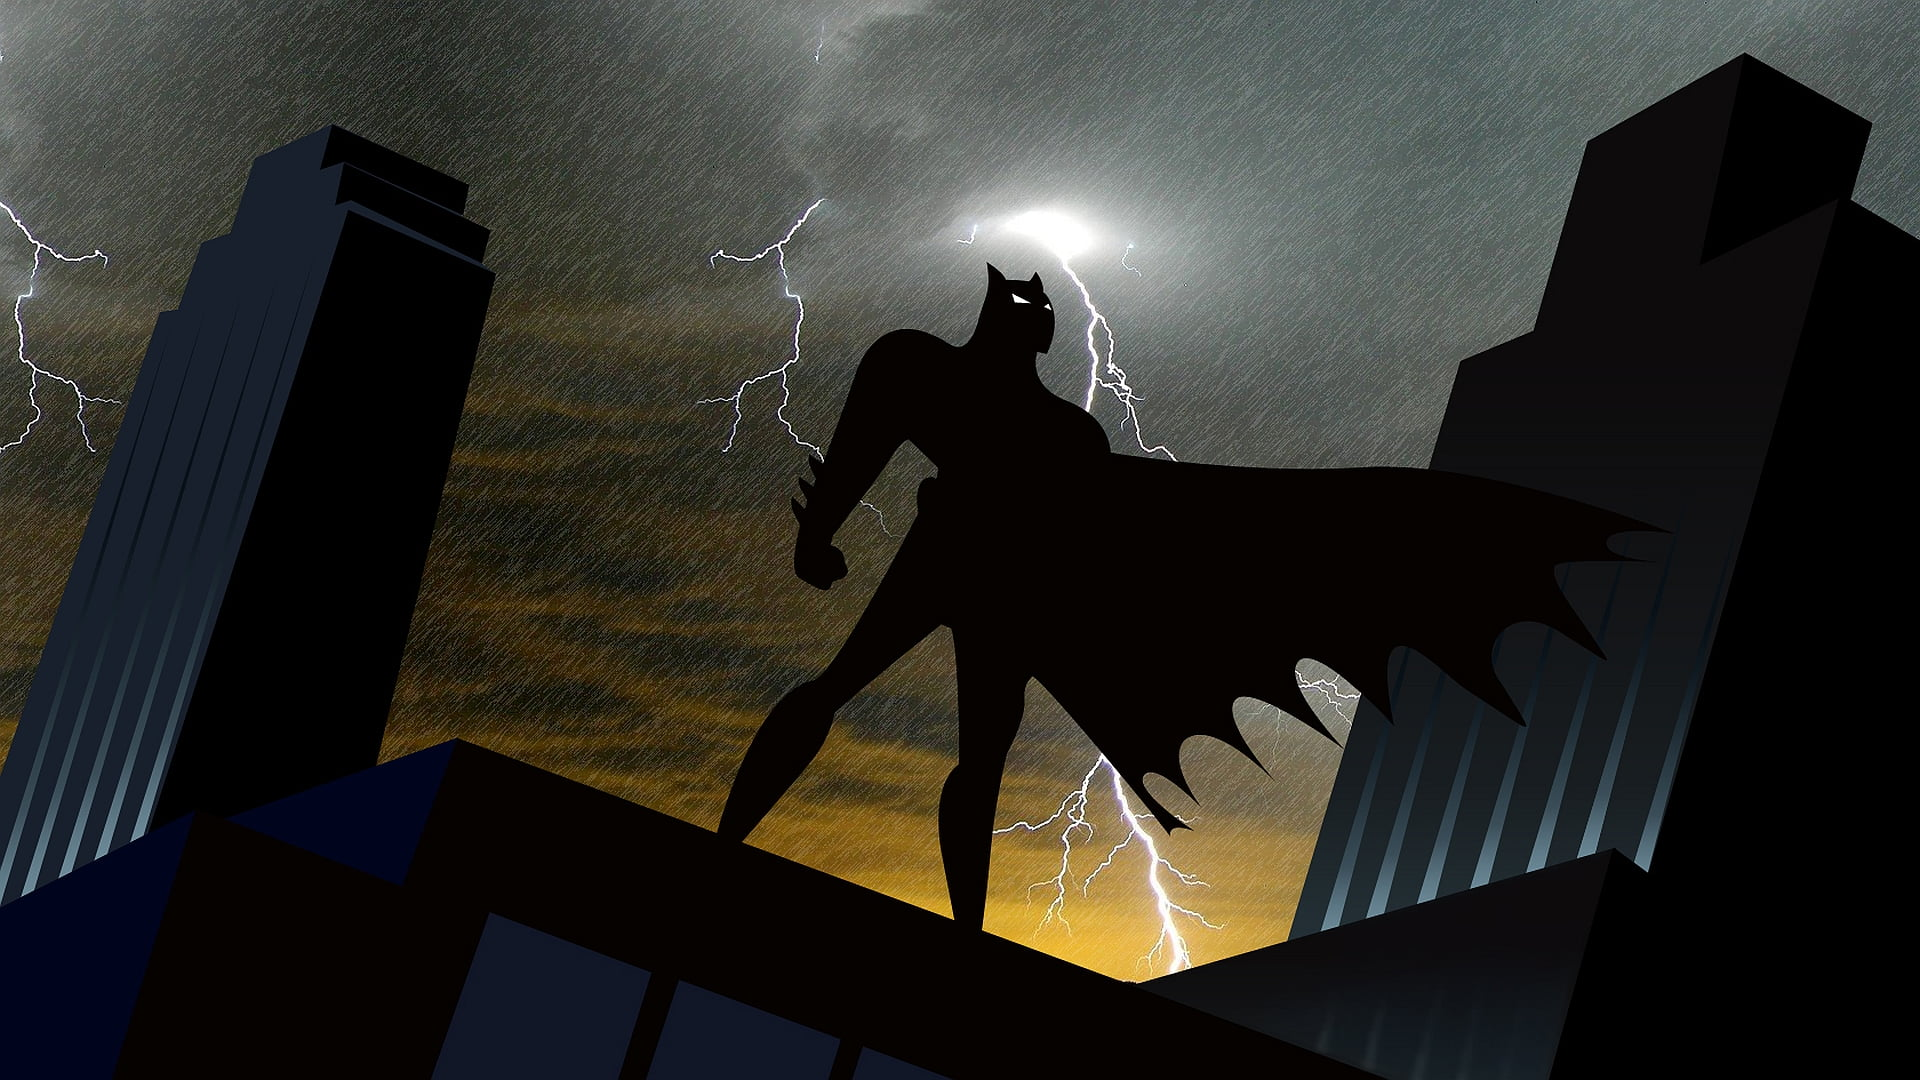 Animated Batman silhouette with lightning